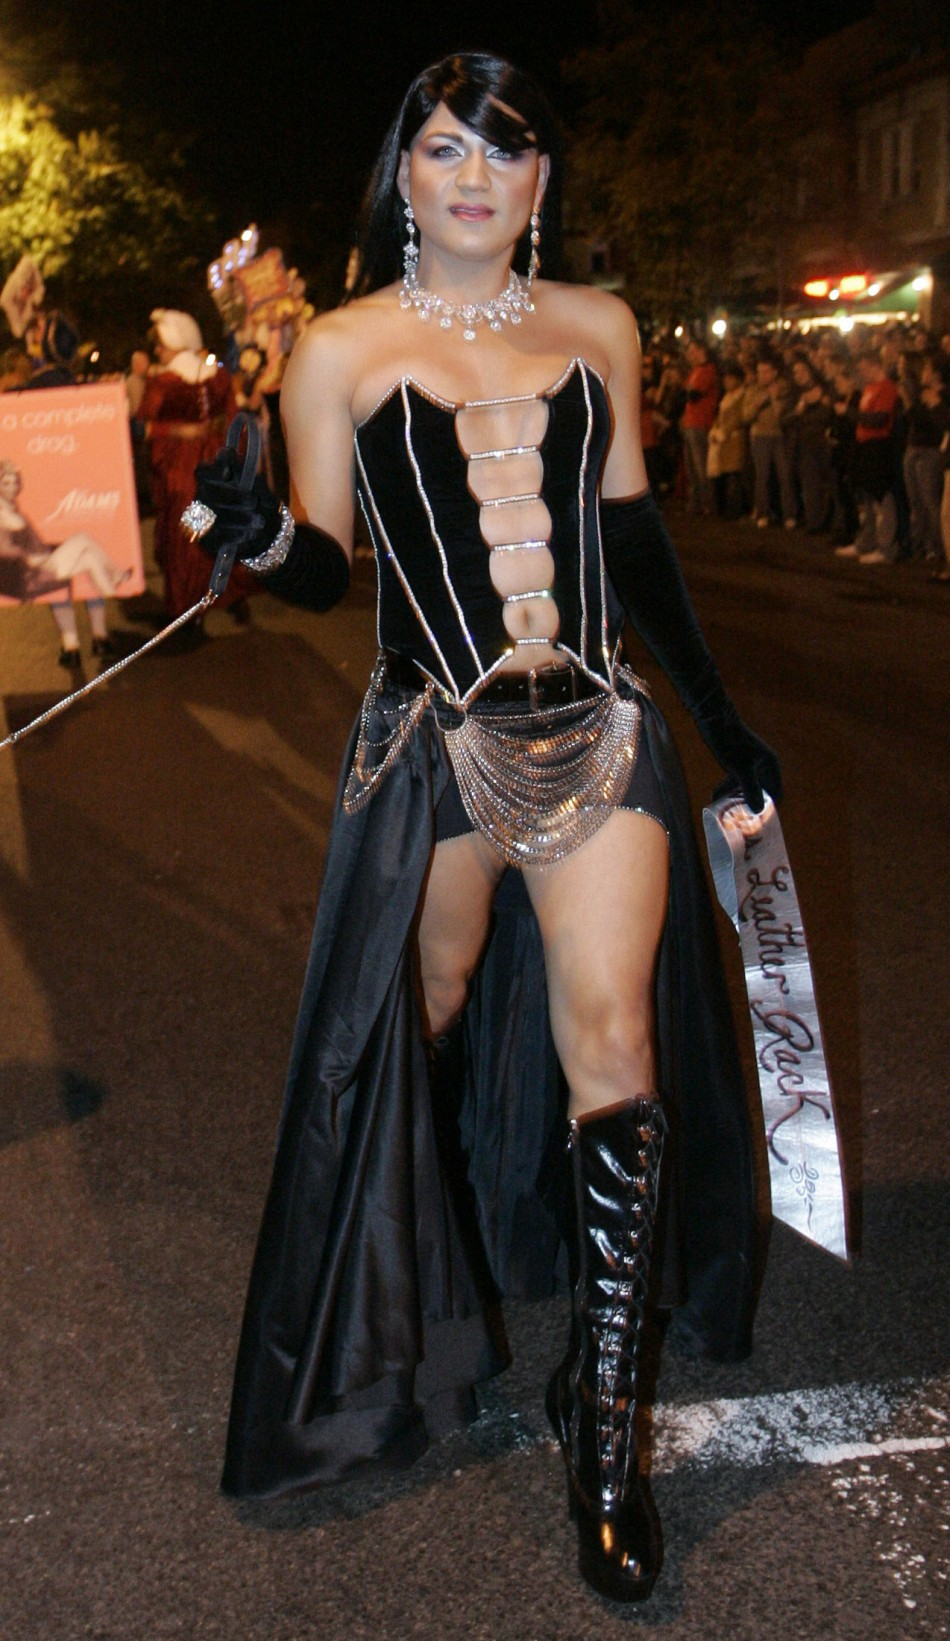 Top 10 Craziest Halloween Cross-Dressing Costume Ideas